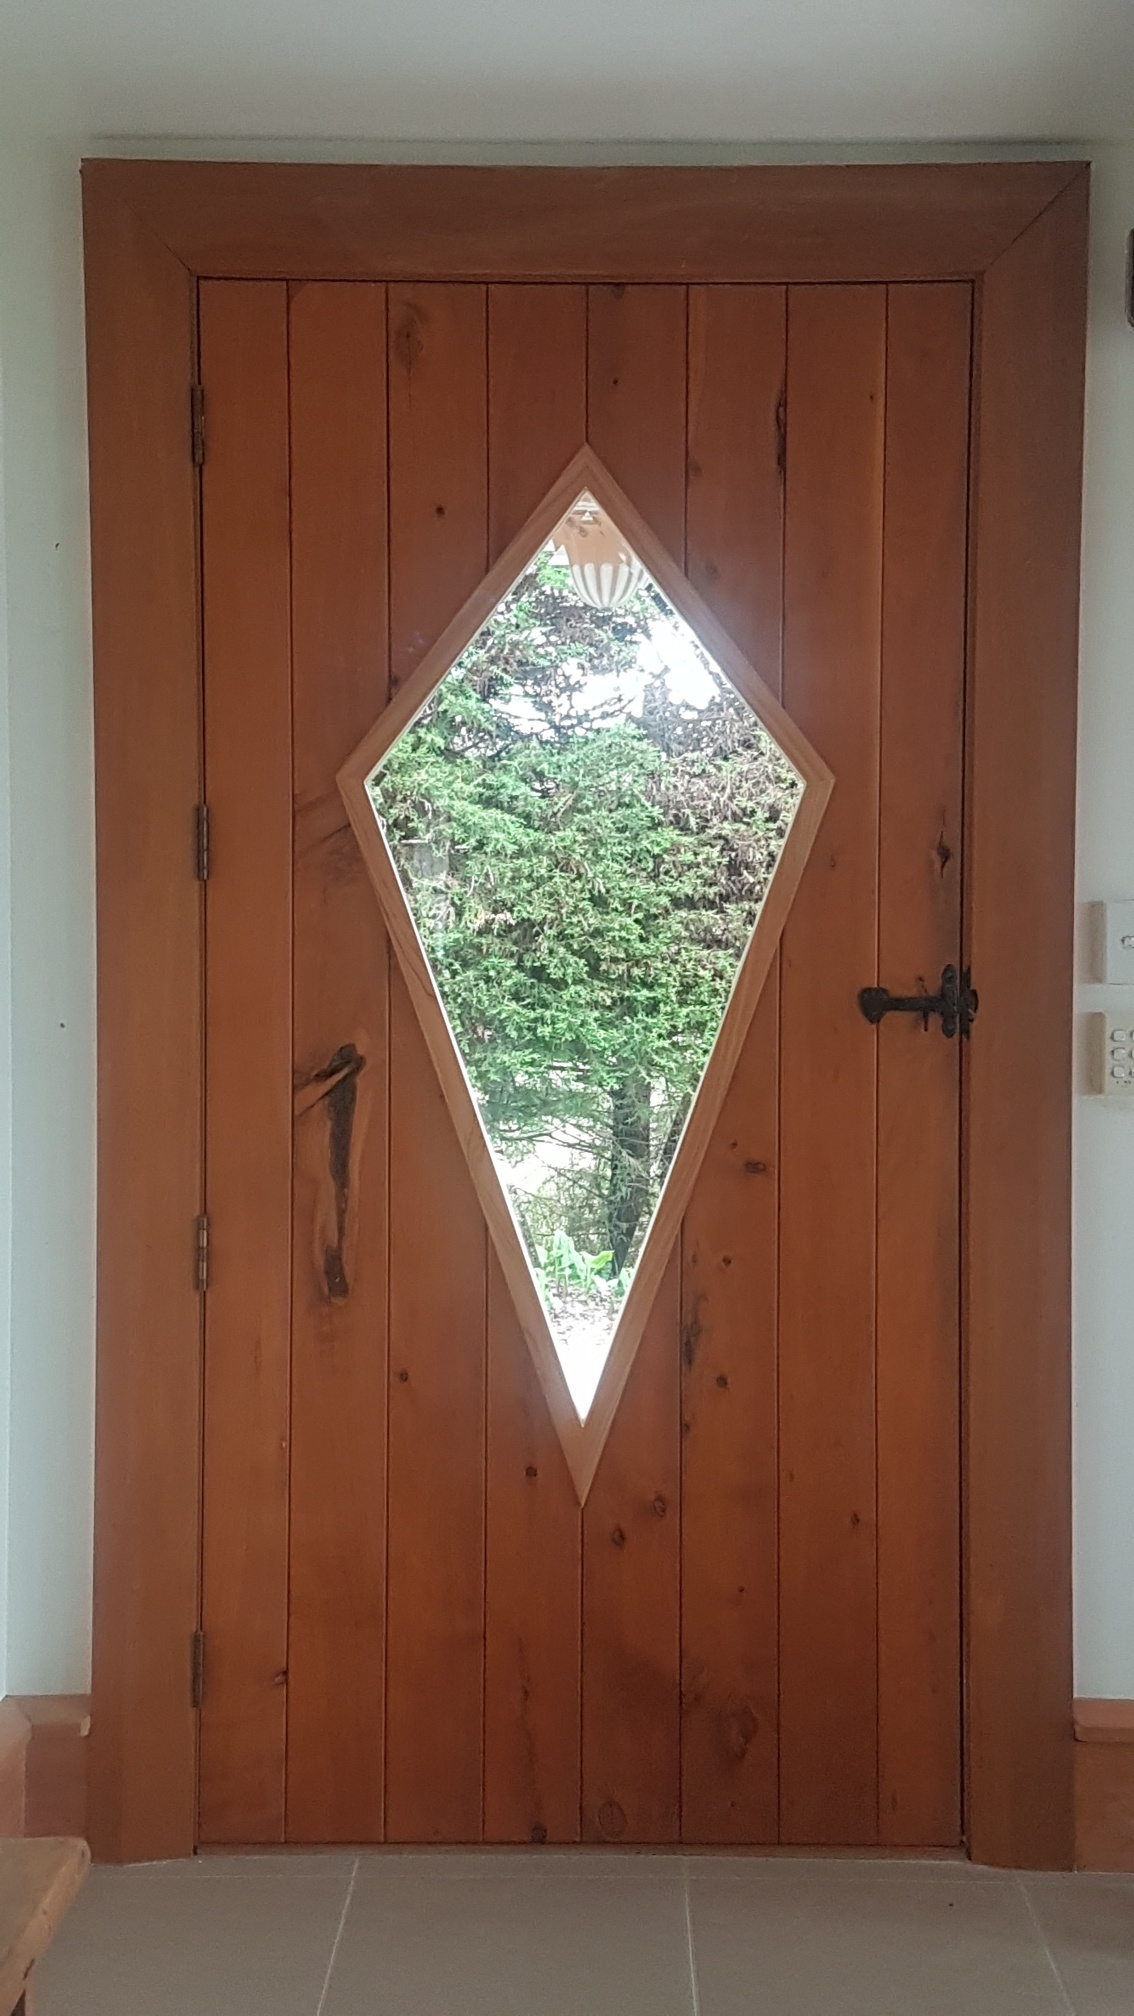 Macrocarpa door with diamond shaped cut out for extra light